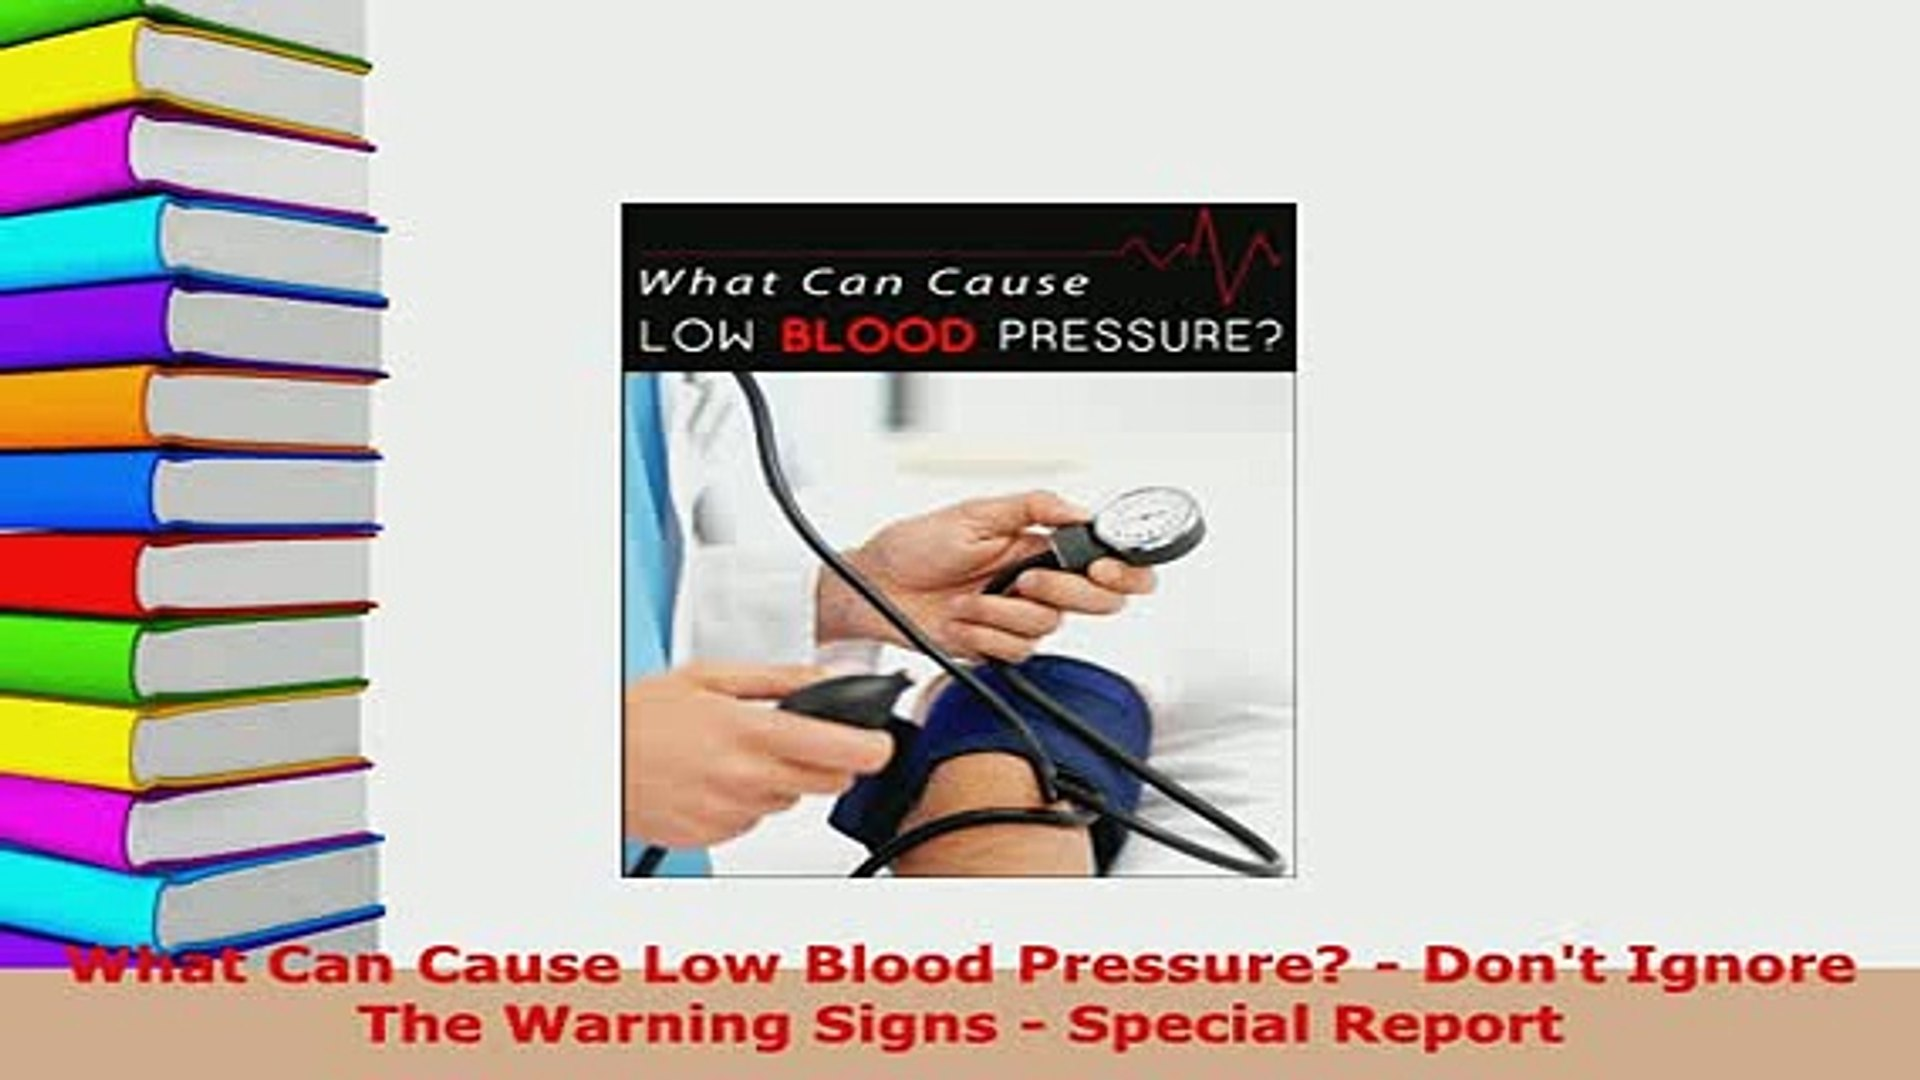 What Can Cause Low Blood Pressure? - Dont Ignore The Warning Signs - Special Report